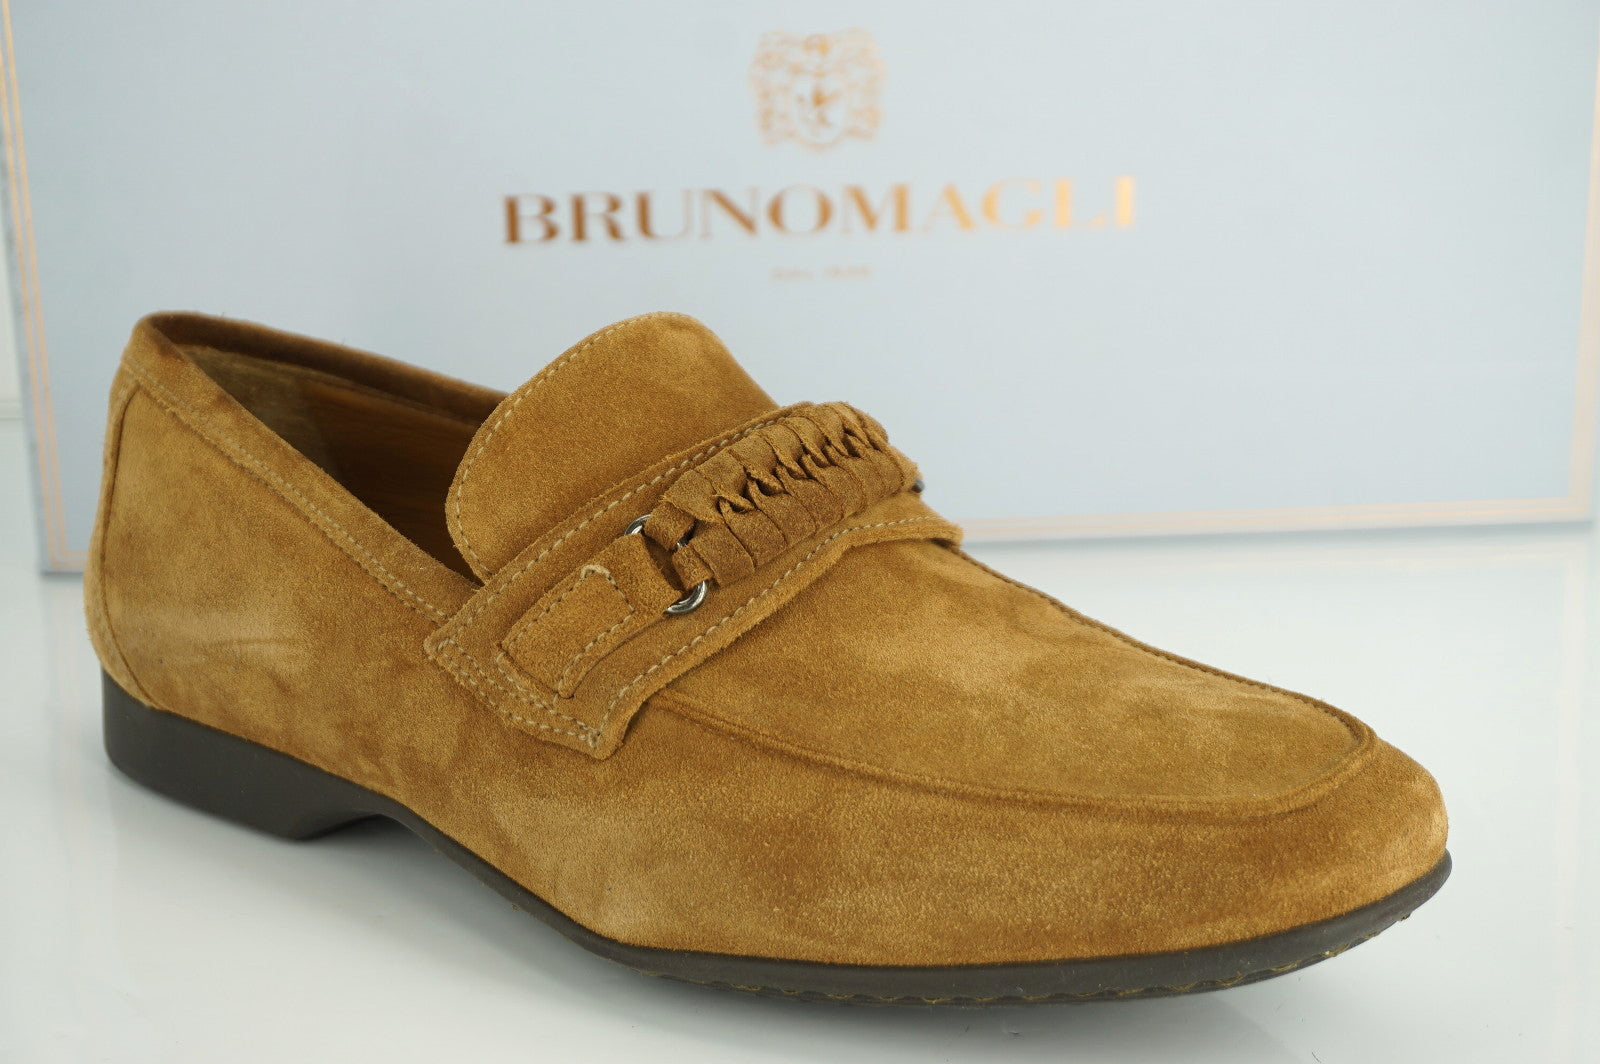 Bruno Magli Tobacco Brown Suede Lorenzo Strap Loafers Size 8.5 NIB $398 Men's